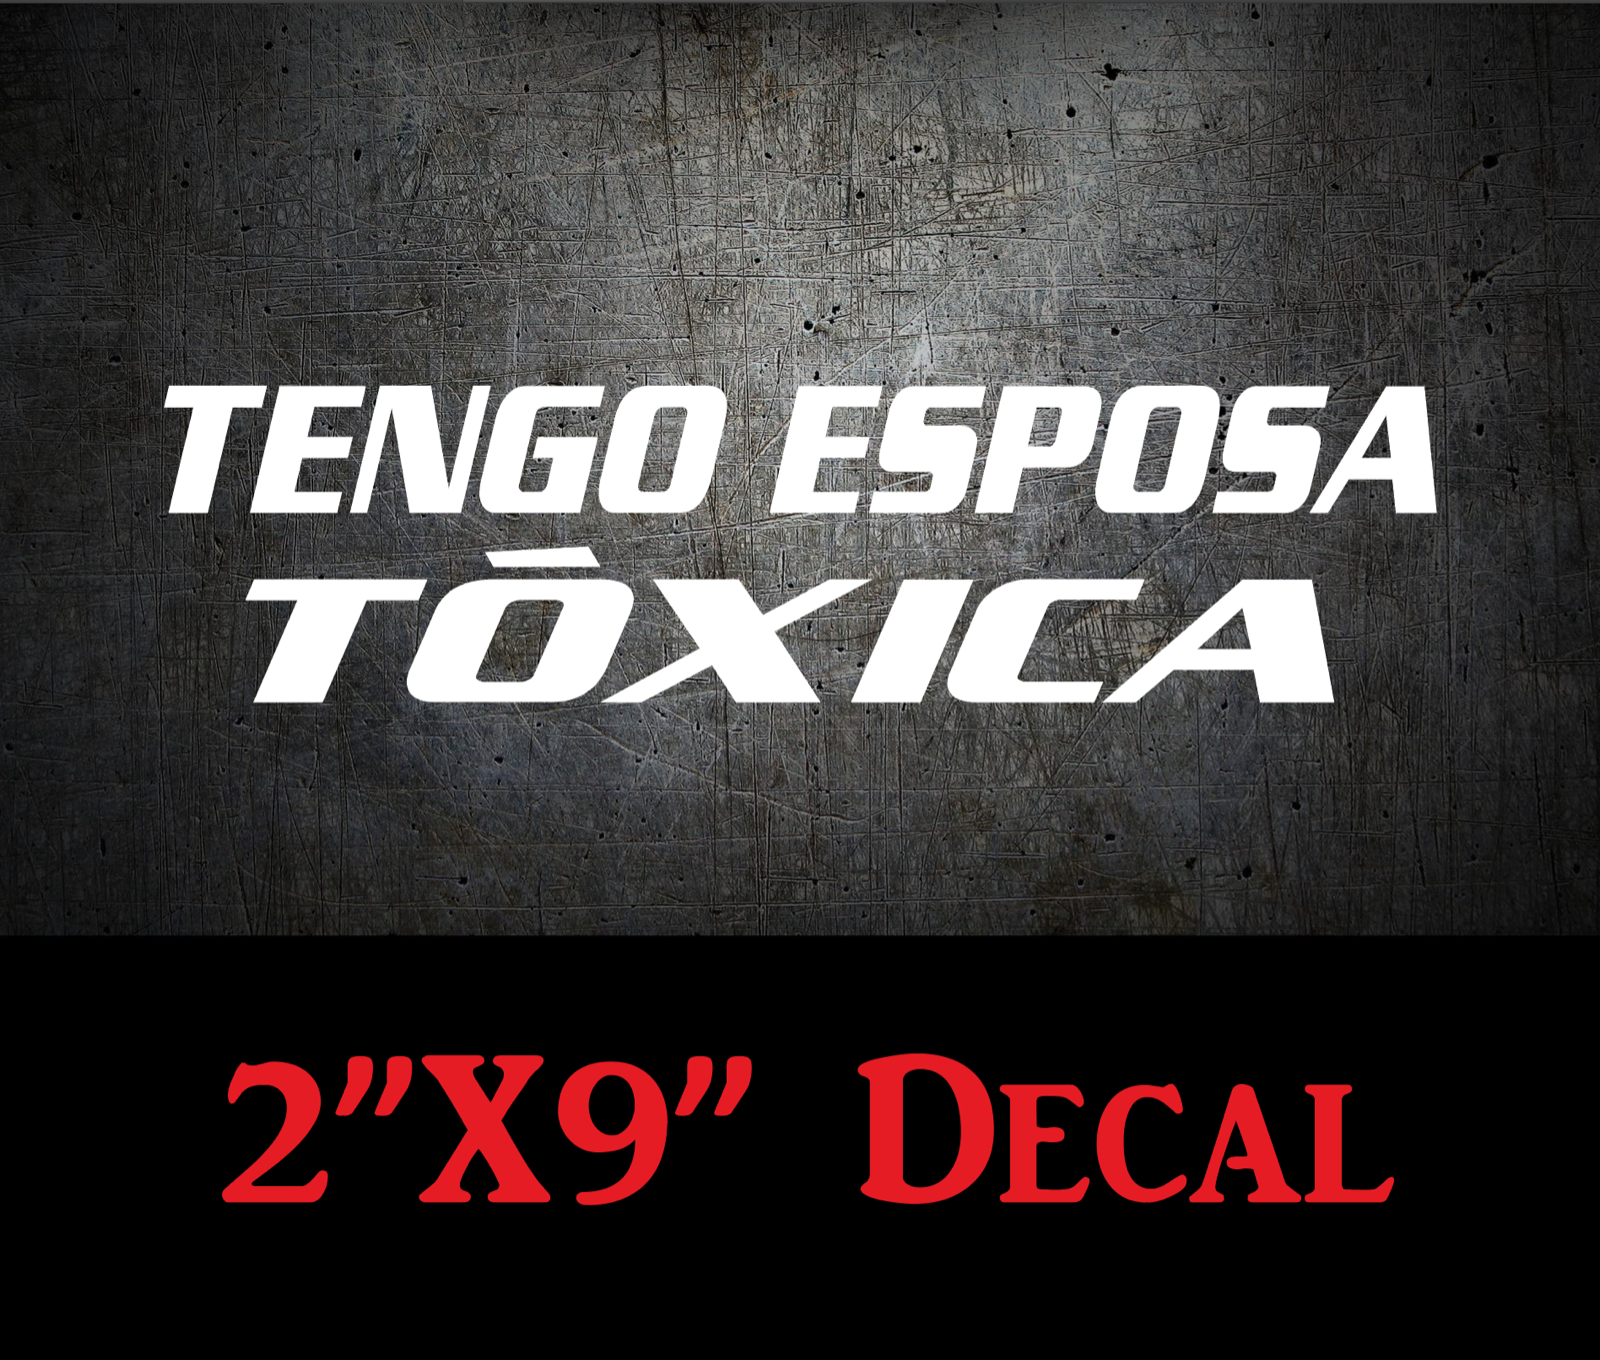 Home Decoration - TENGO ESPOSA TOXICA - Funny Decal Sticker Window Mexican Car Spanish Novia Wife